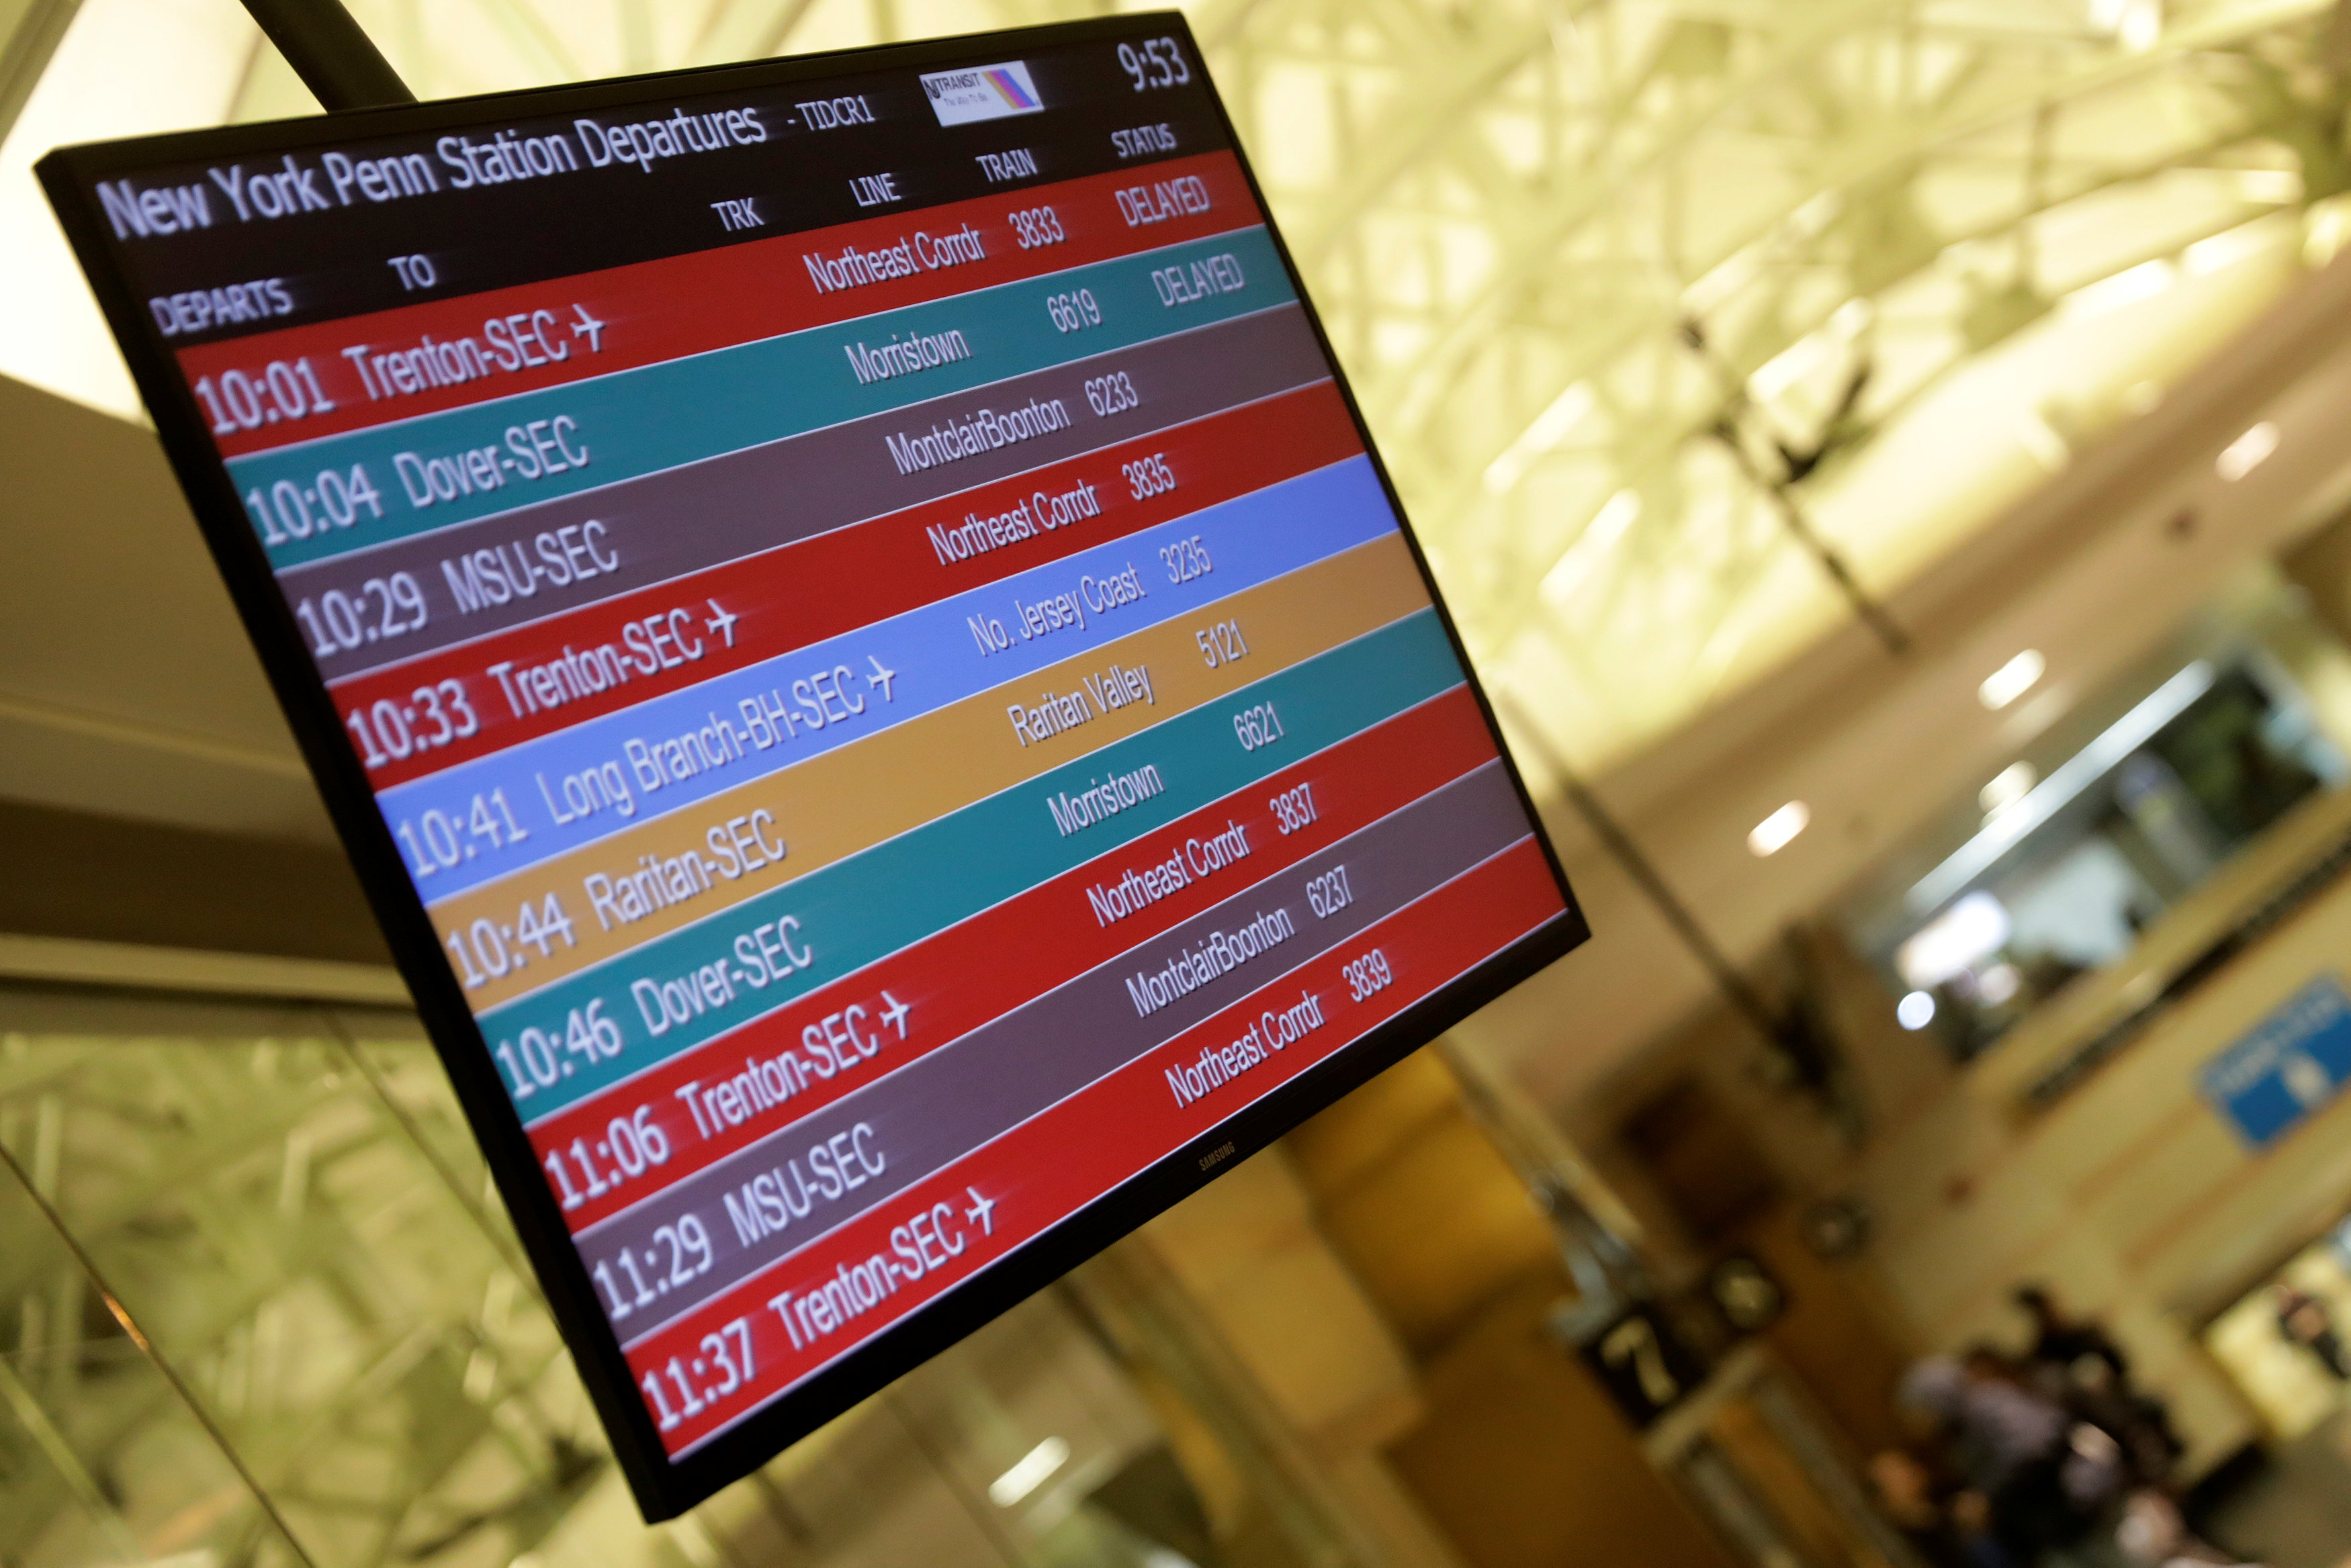 A sign board showing delays is pictured at Pennsylvania Station after an incident in the Manhattan borough of New York on March 24, 2017. (REUTERS/Lucas Jackson)